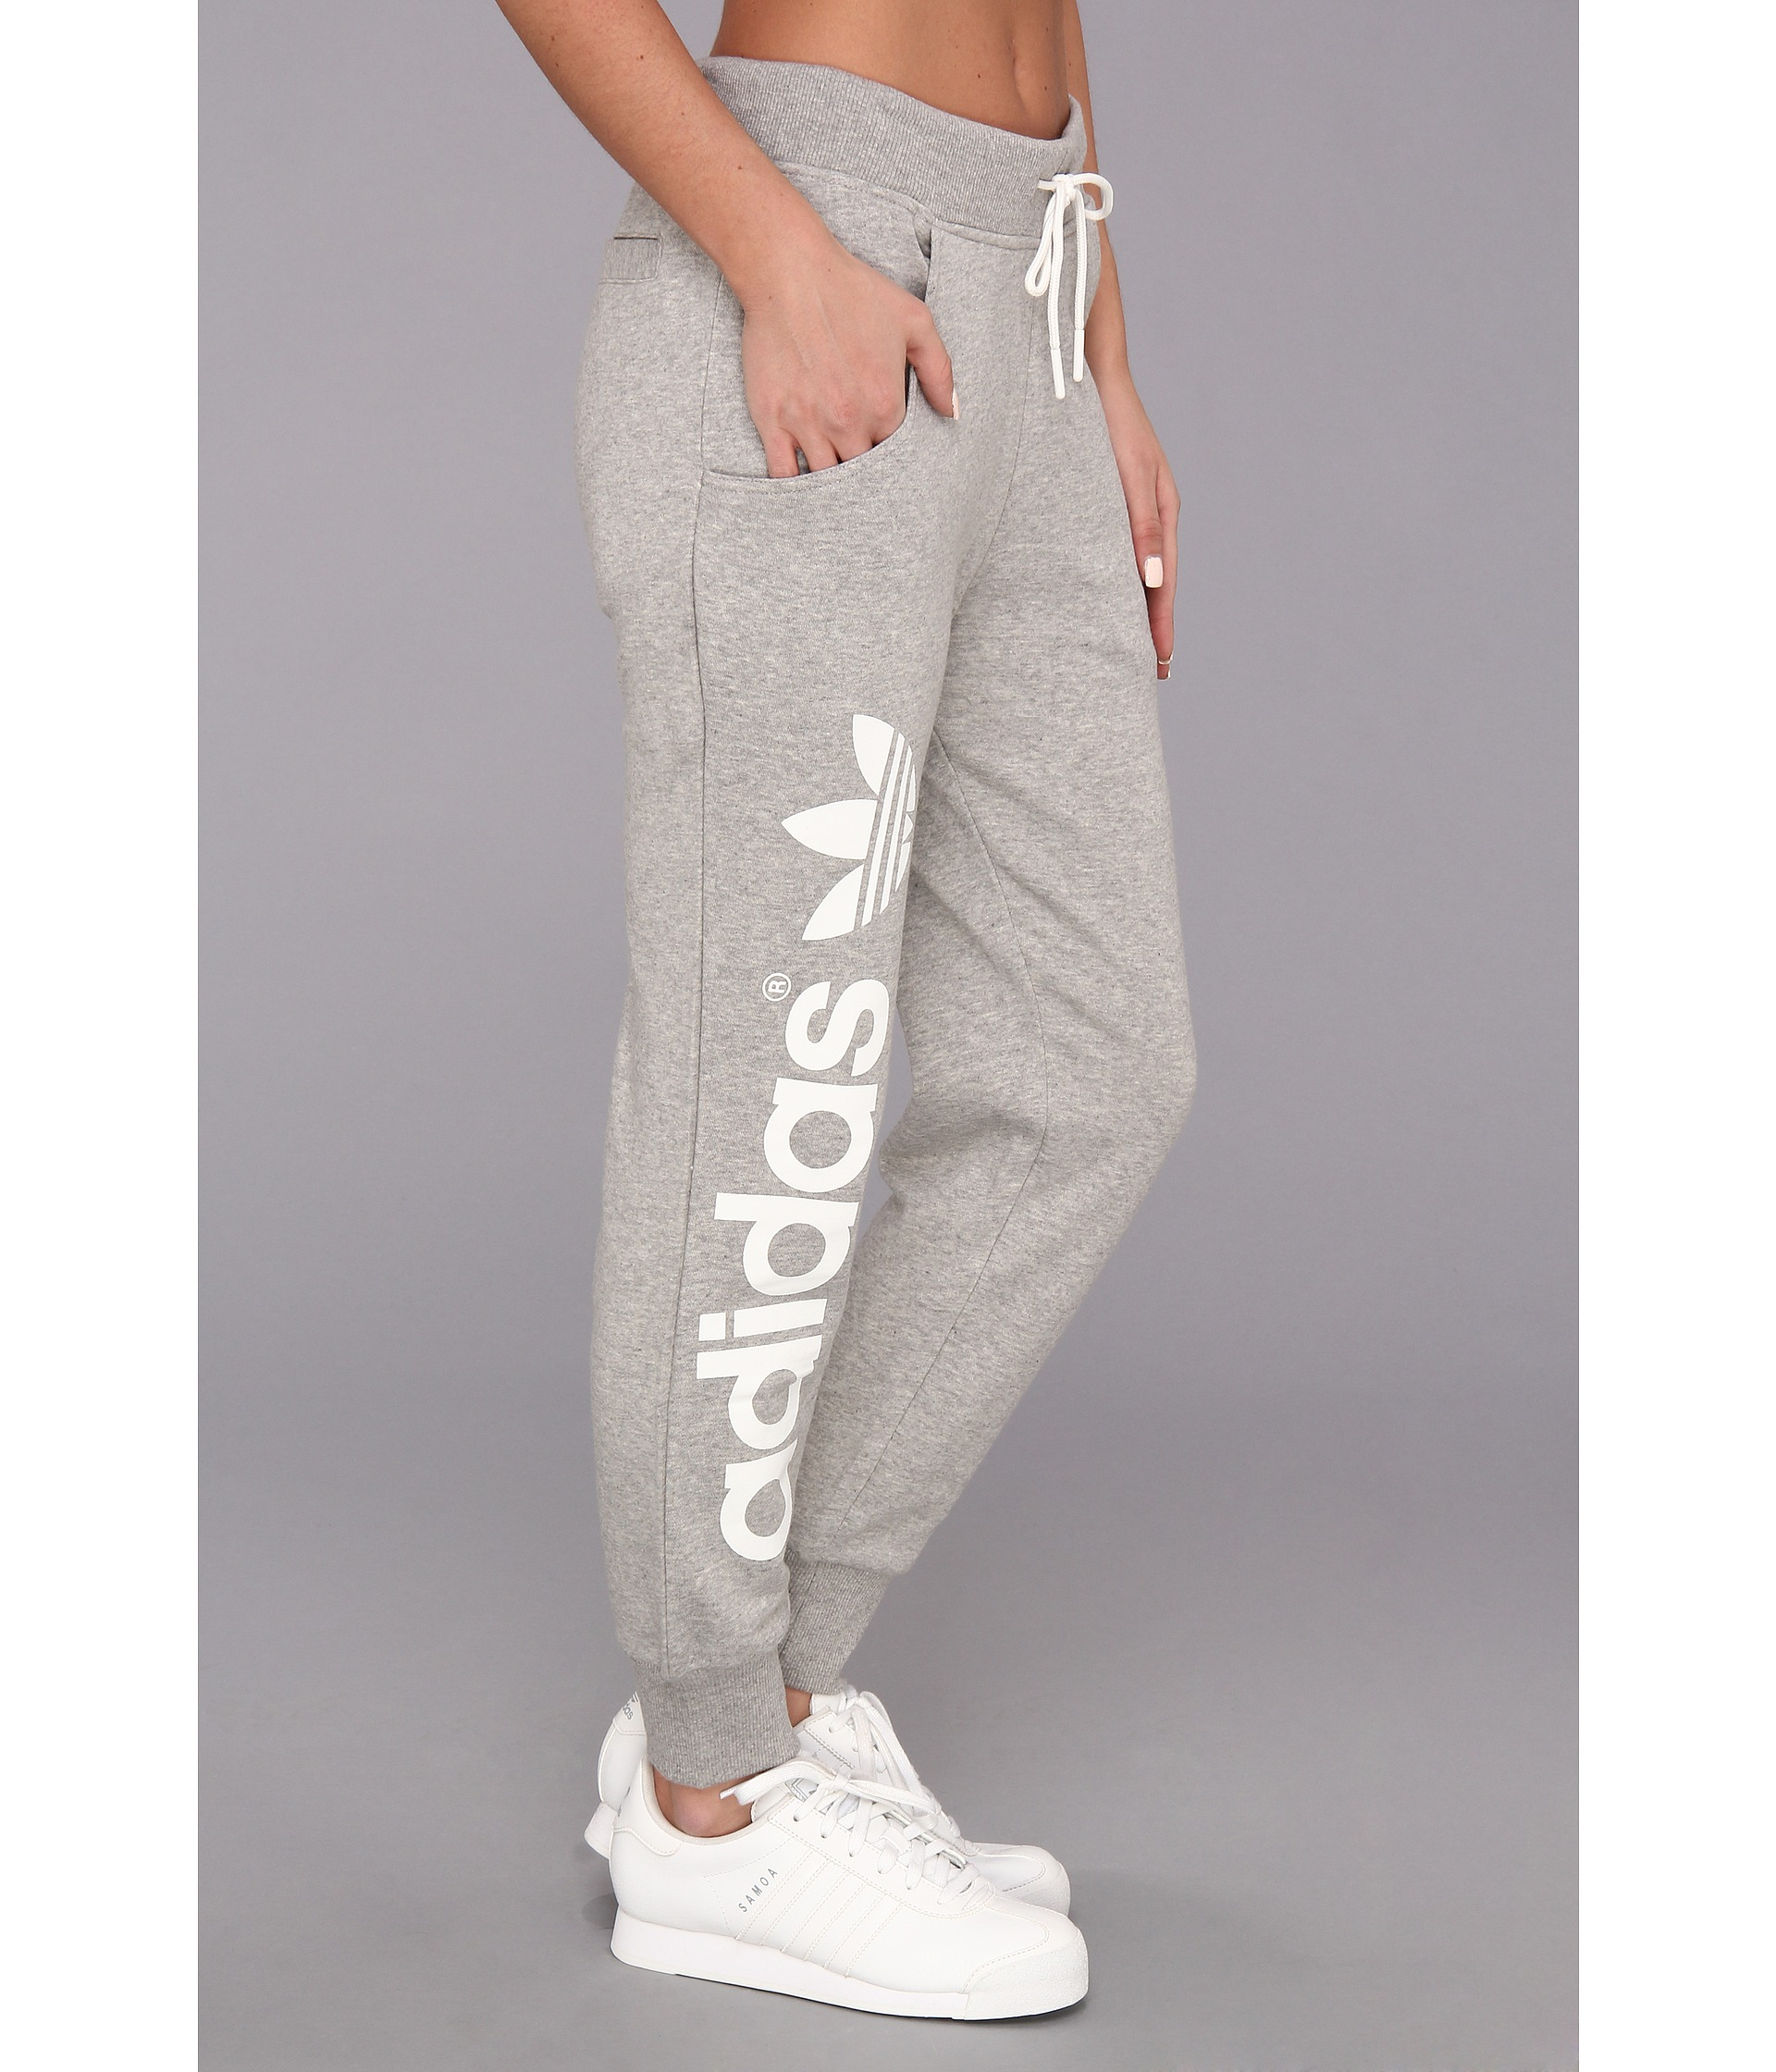 Adidas Originals Originals Baggy Track Pant | Shipped Free at Zappos